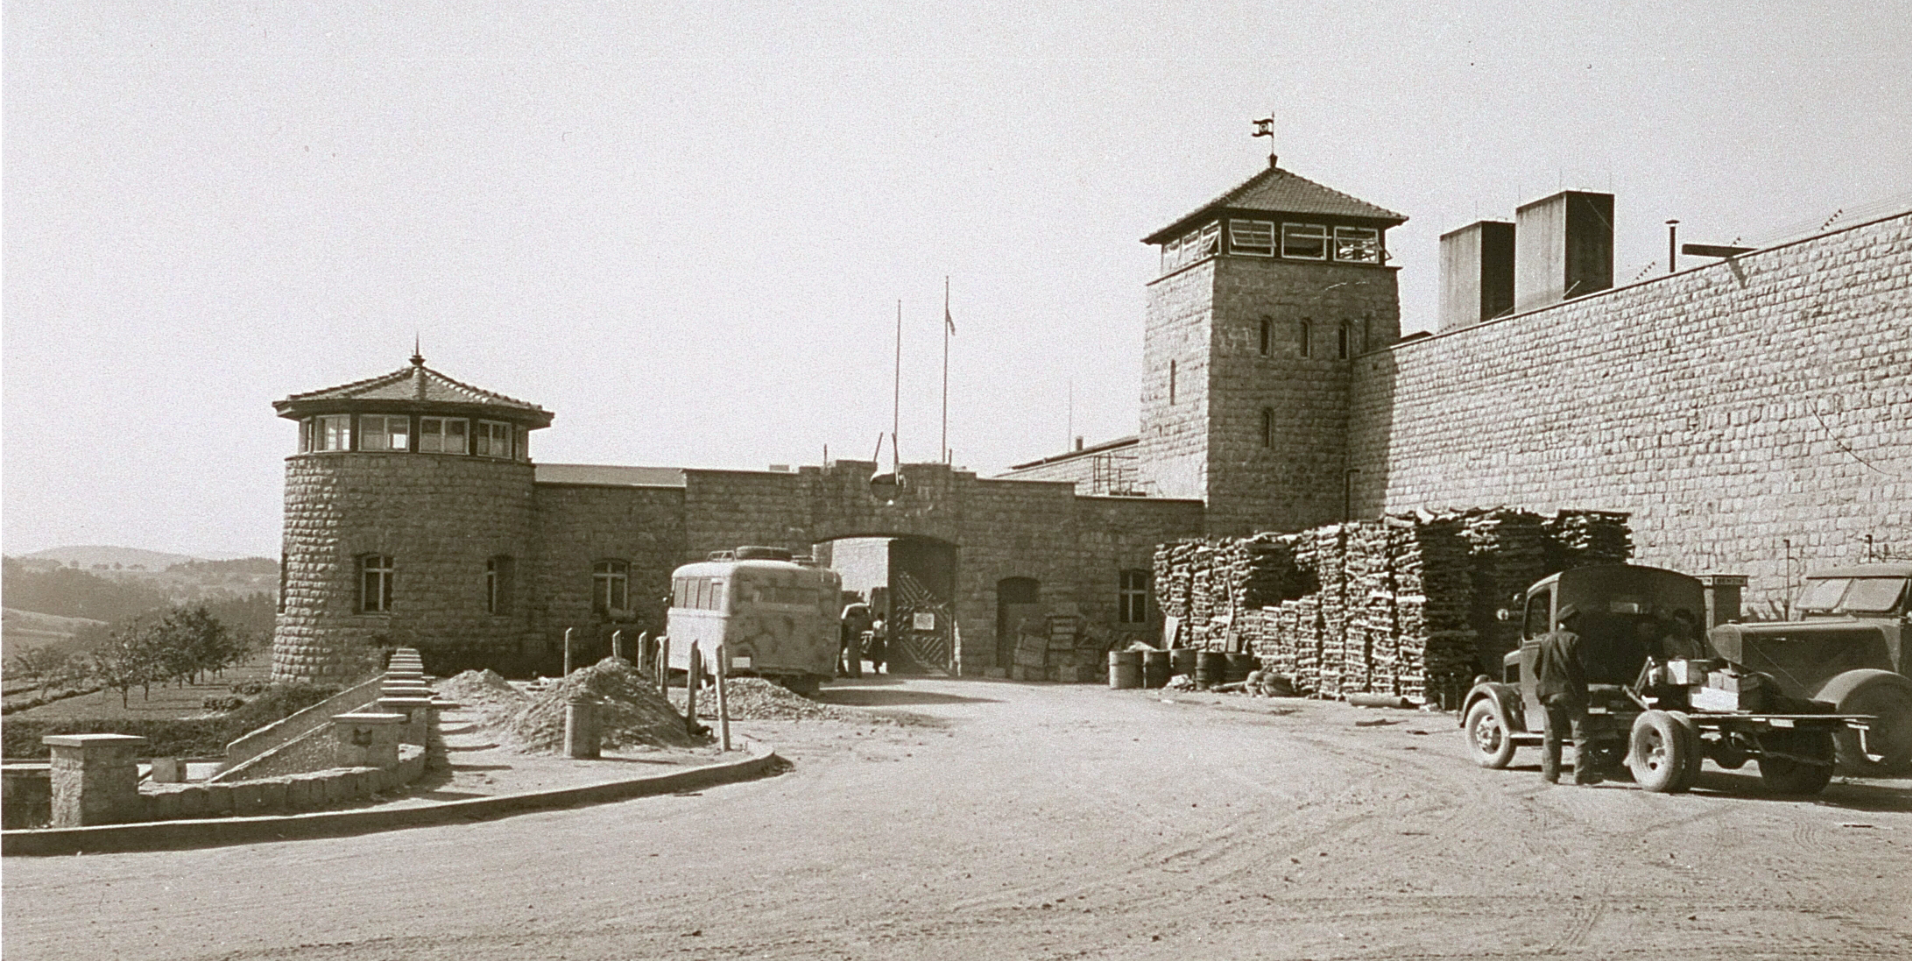 Mauthuasen concentration camp.